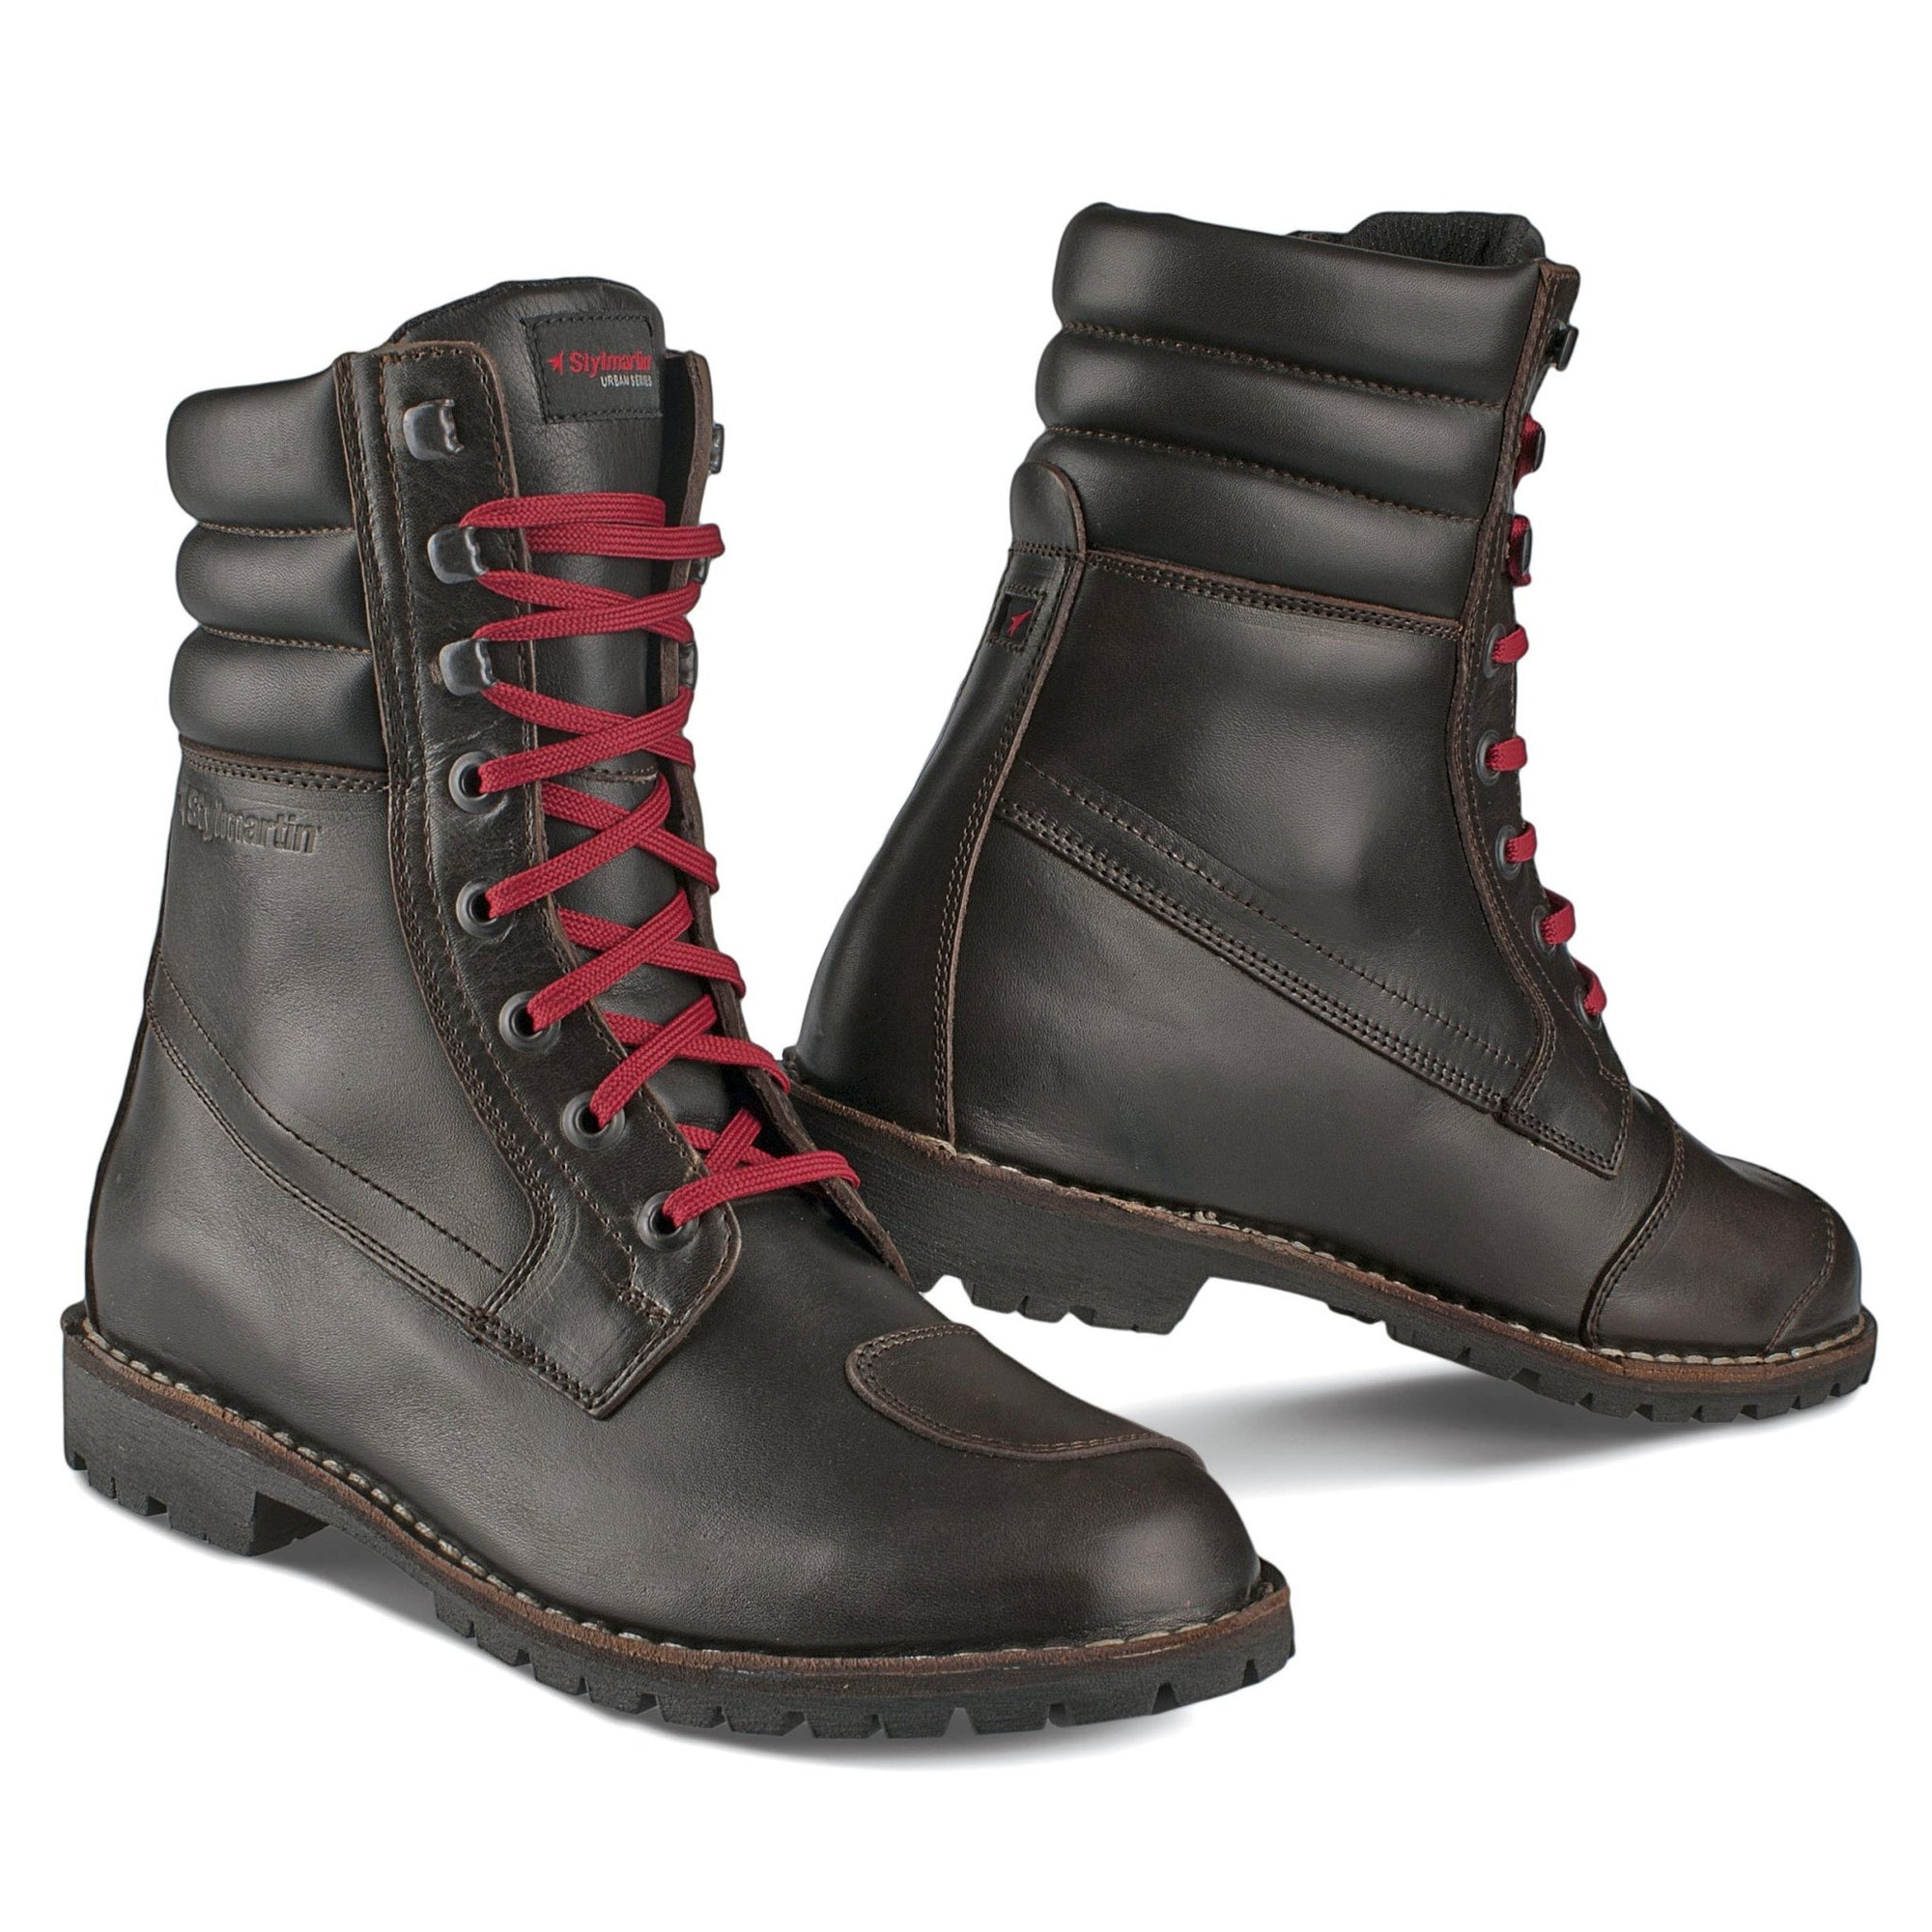 Stylmartin - Stylmartin Yu'Rok WP Urban in Brown - Boots - Salt Flats Clothing